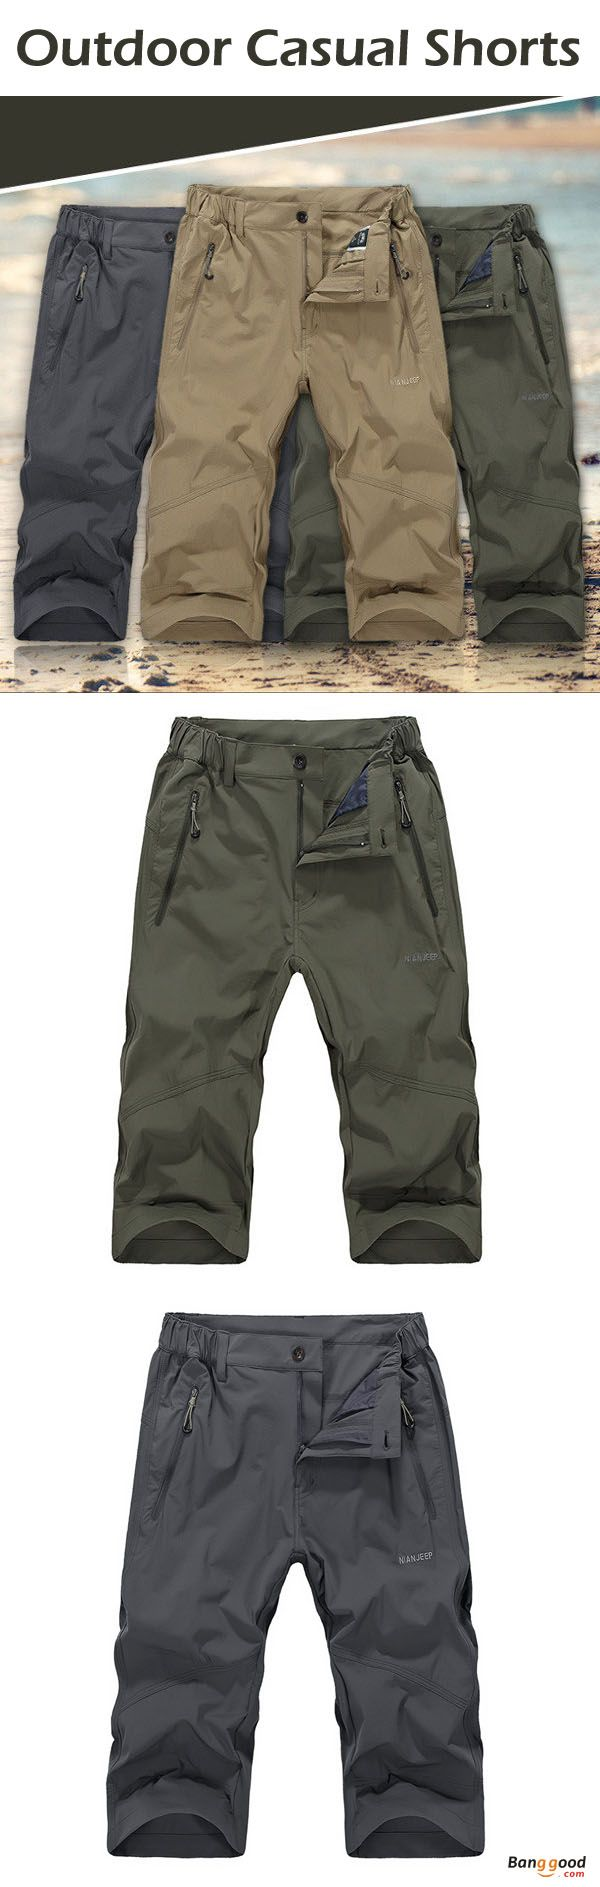 US$32.79+Free shipping. Men's Shorts, Outdoor Shorts, Casual Shorts, Material: 85% Cotton Fiber + 15% Spandex. Color: Khaki, Army Green, Gray. Function: Windproof, Breathable, Water-repellent, Quick-drying, Sun-proof, Scratch resistant.